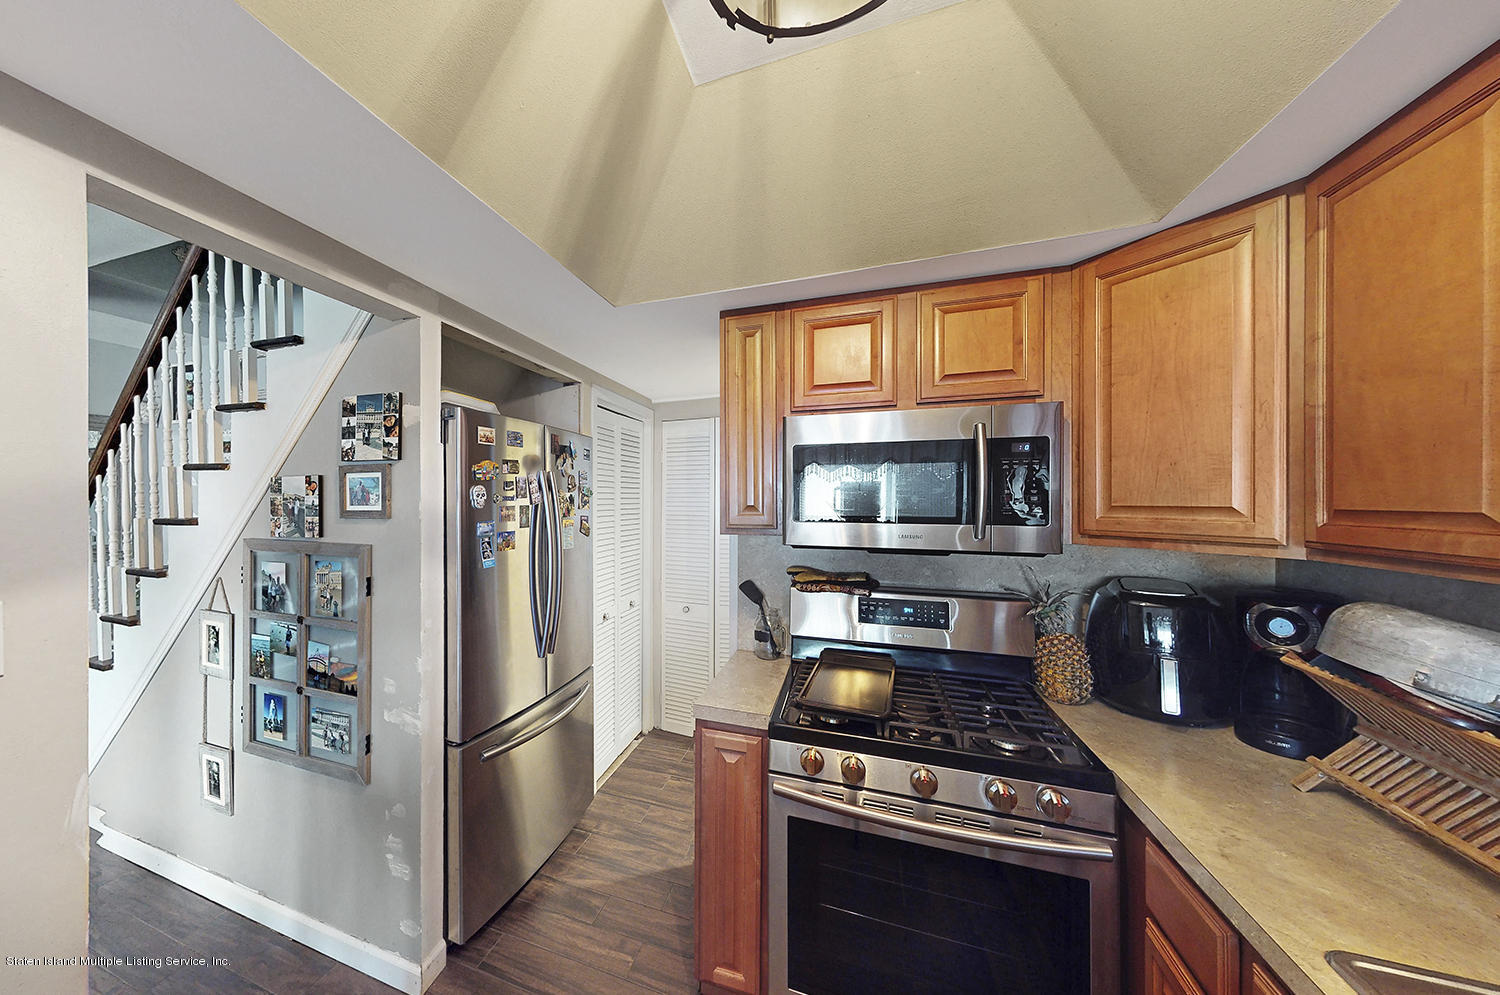 Single Family - Attached 10 Greentree Lane A  Staten Island, NY 10314, MLS-1131041-9